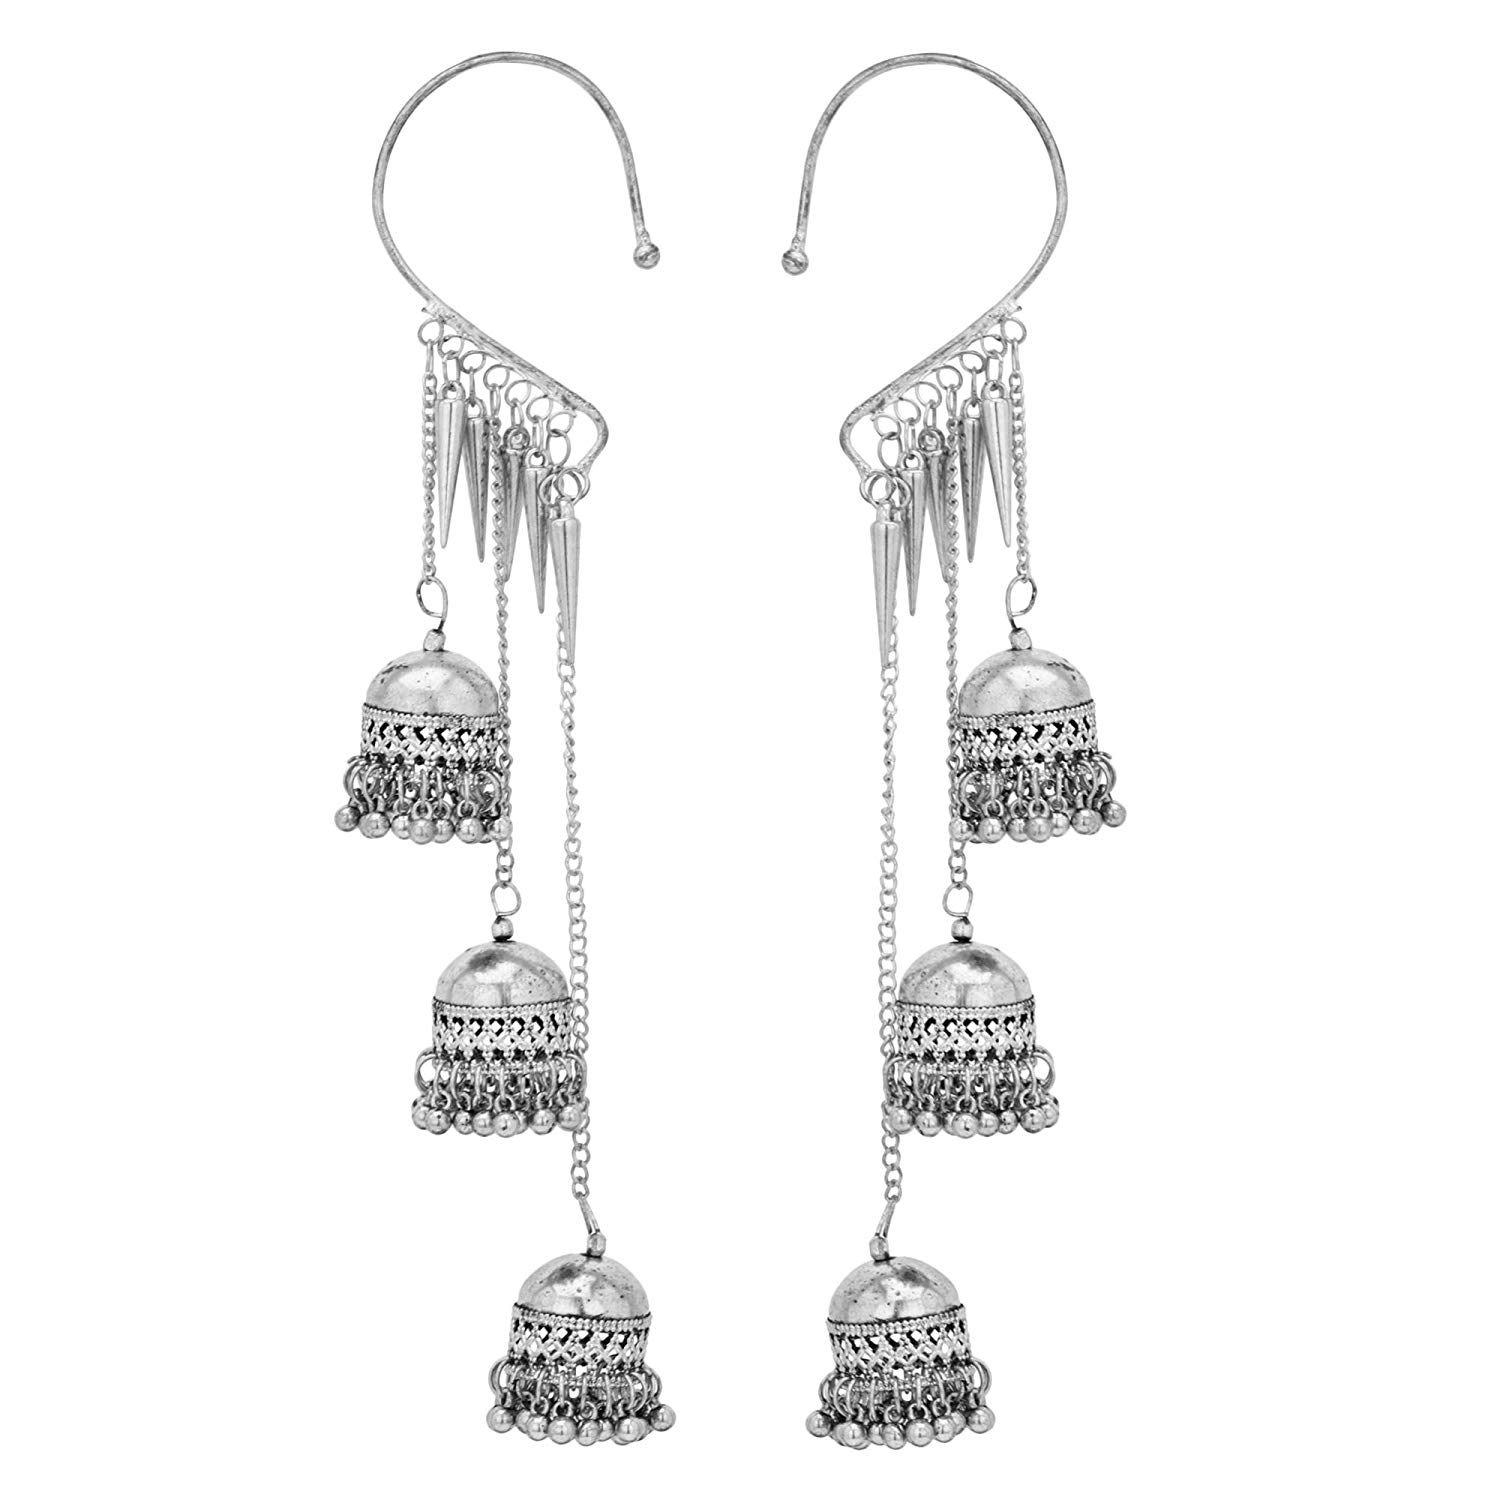 Subharpit Blue Oxidized Silver Metal Indian Jhumka Jhumki Earrings for Women /& Girls